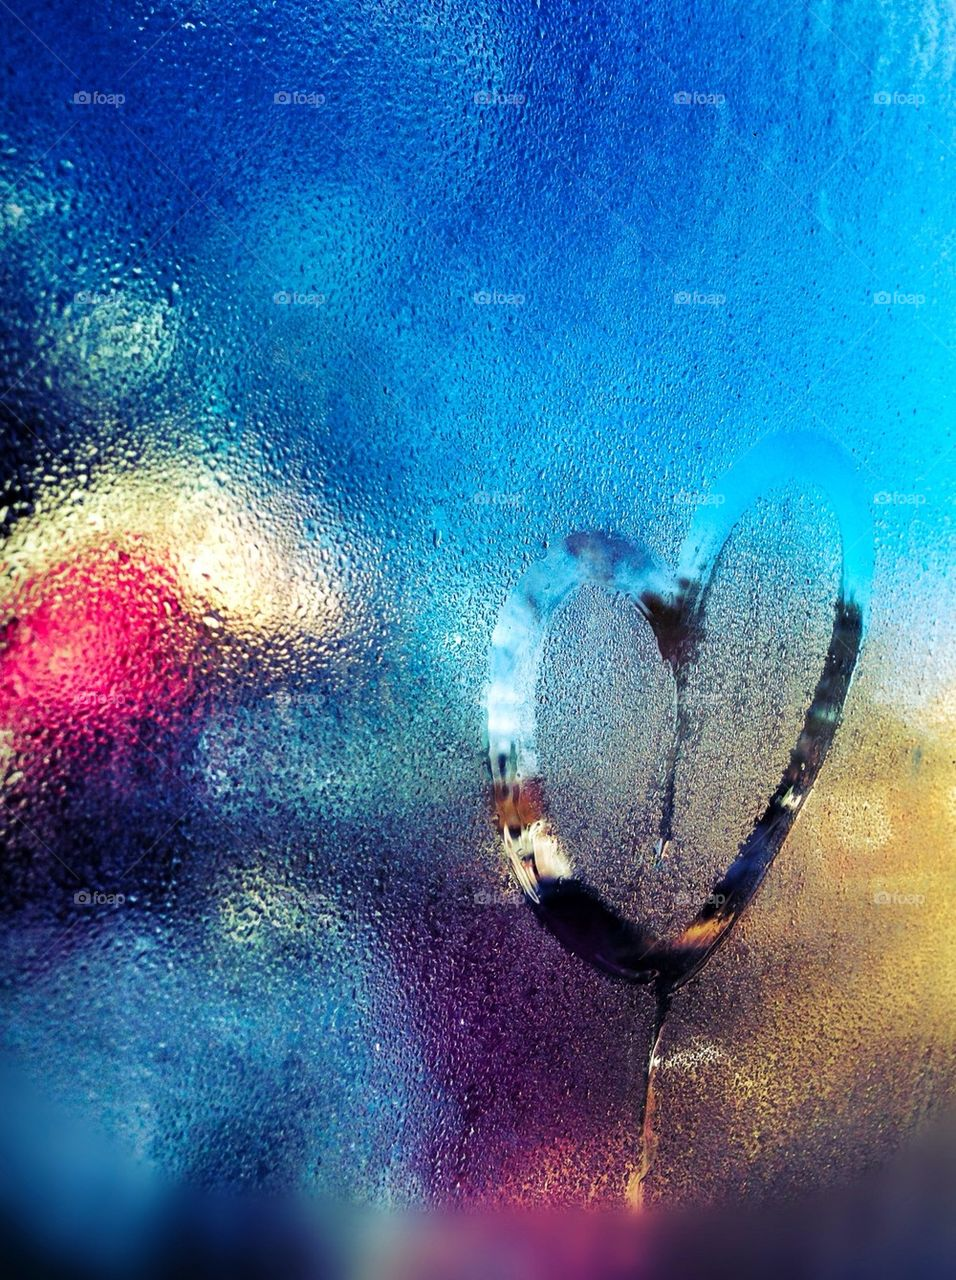 Sign of love heart on glass